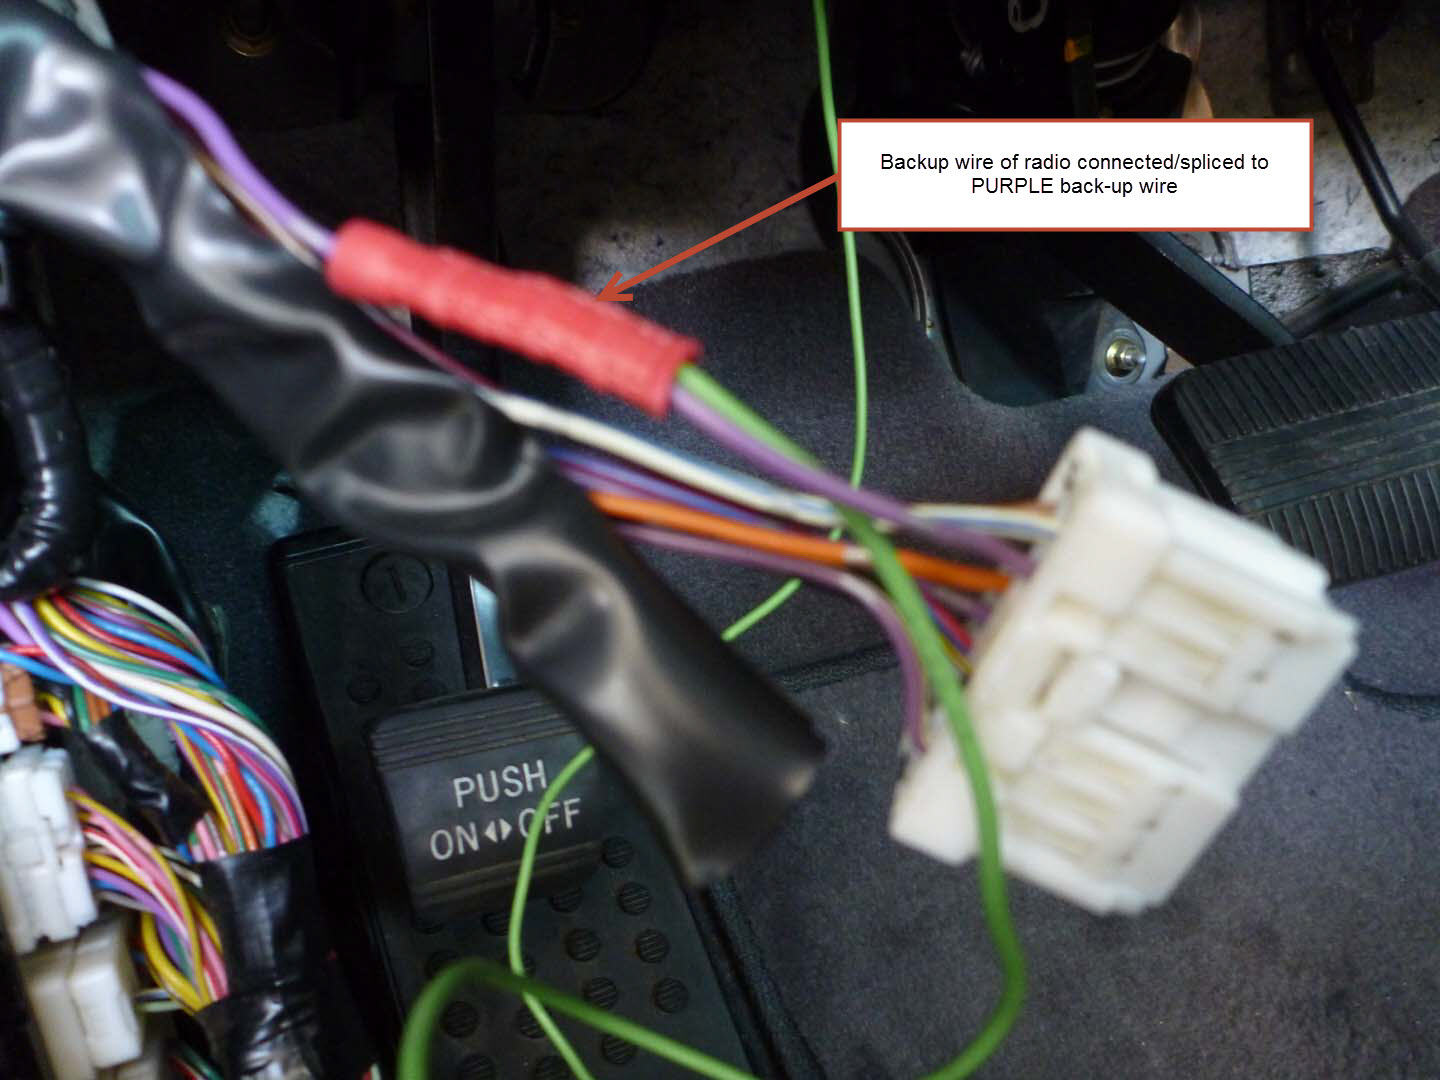 2013 Nissan Maxima Wiring Diagrams Installing A Backup Camera Which Harness Wire Indicates